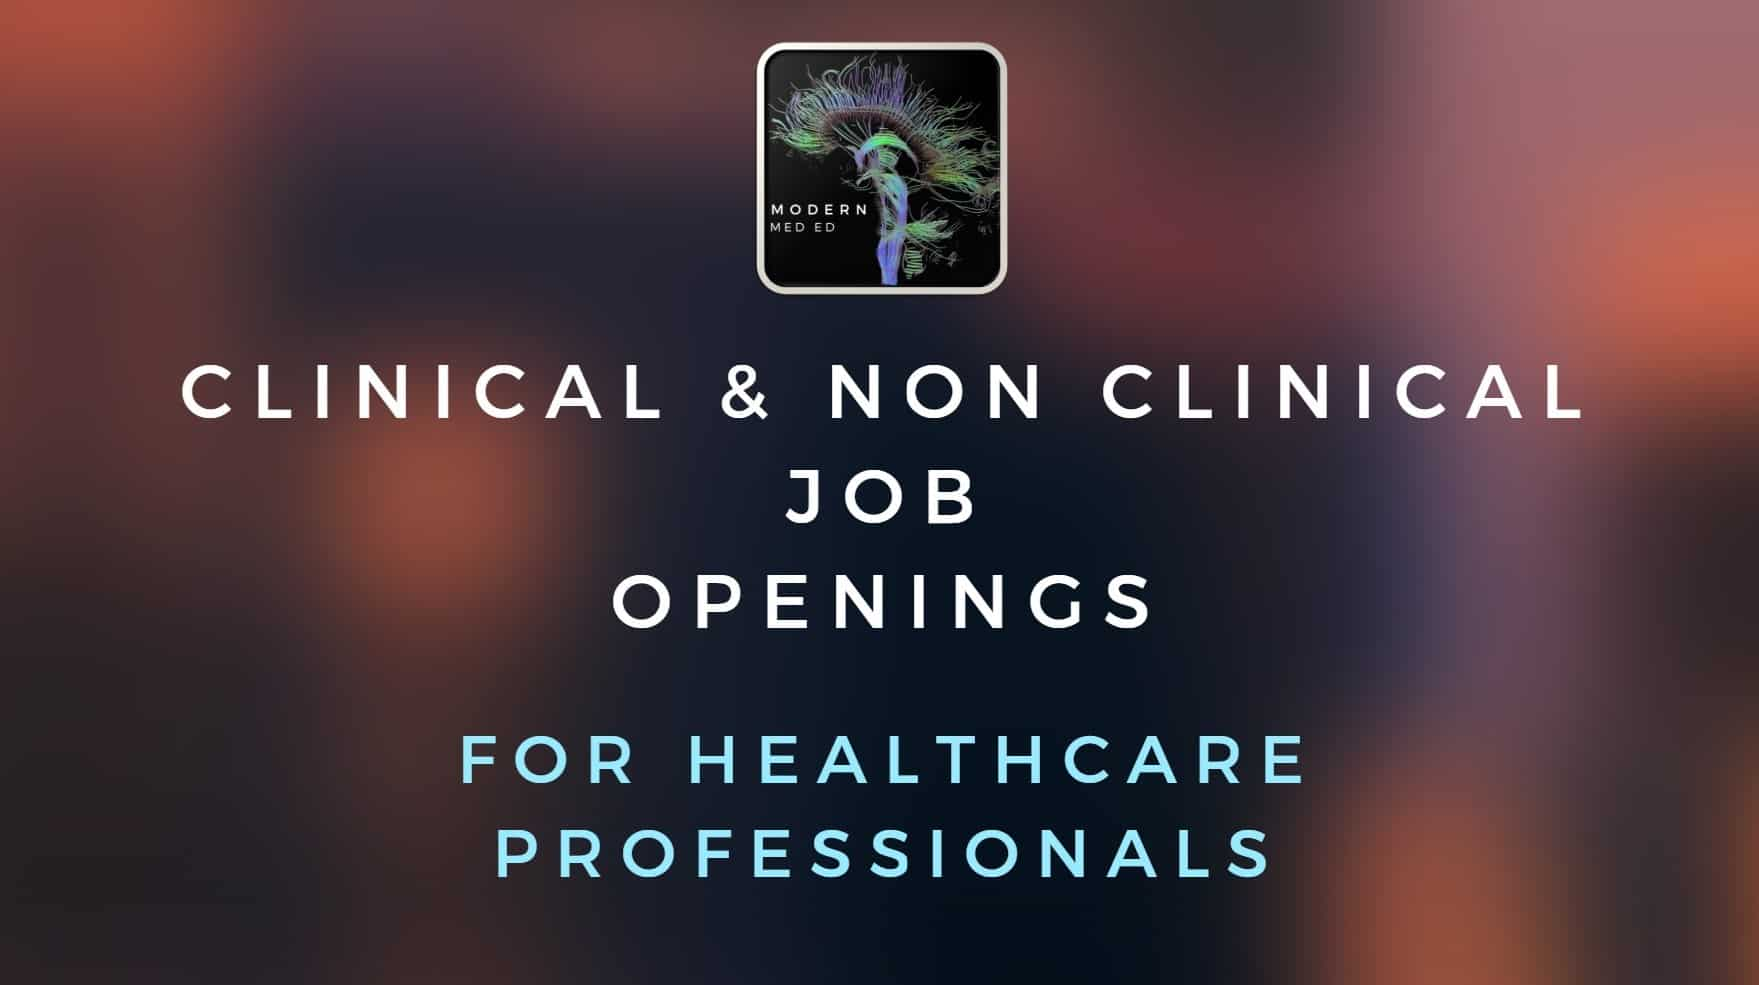 non clinical job openings for healthcare professionals